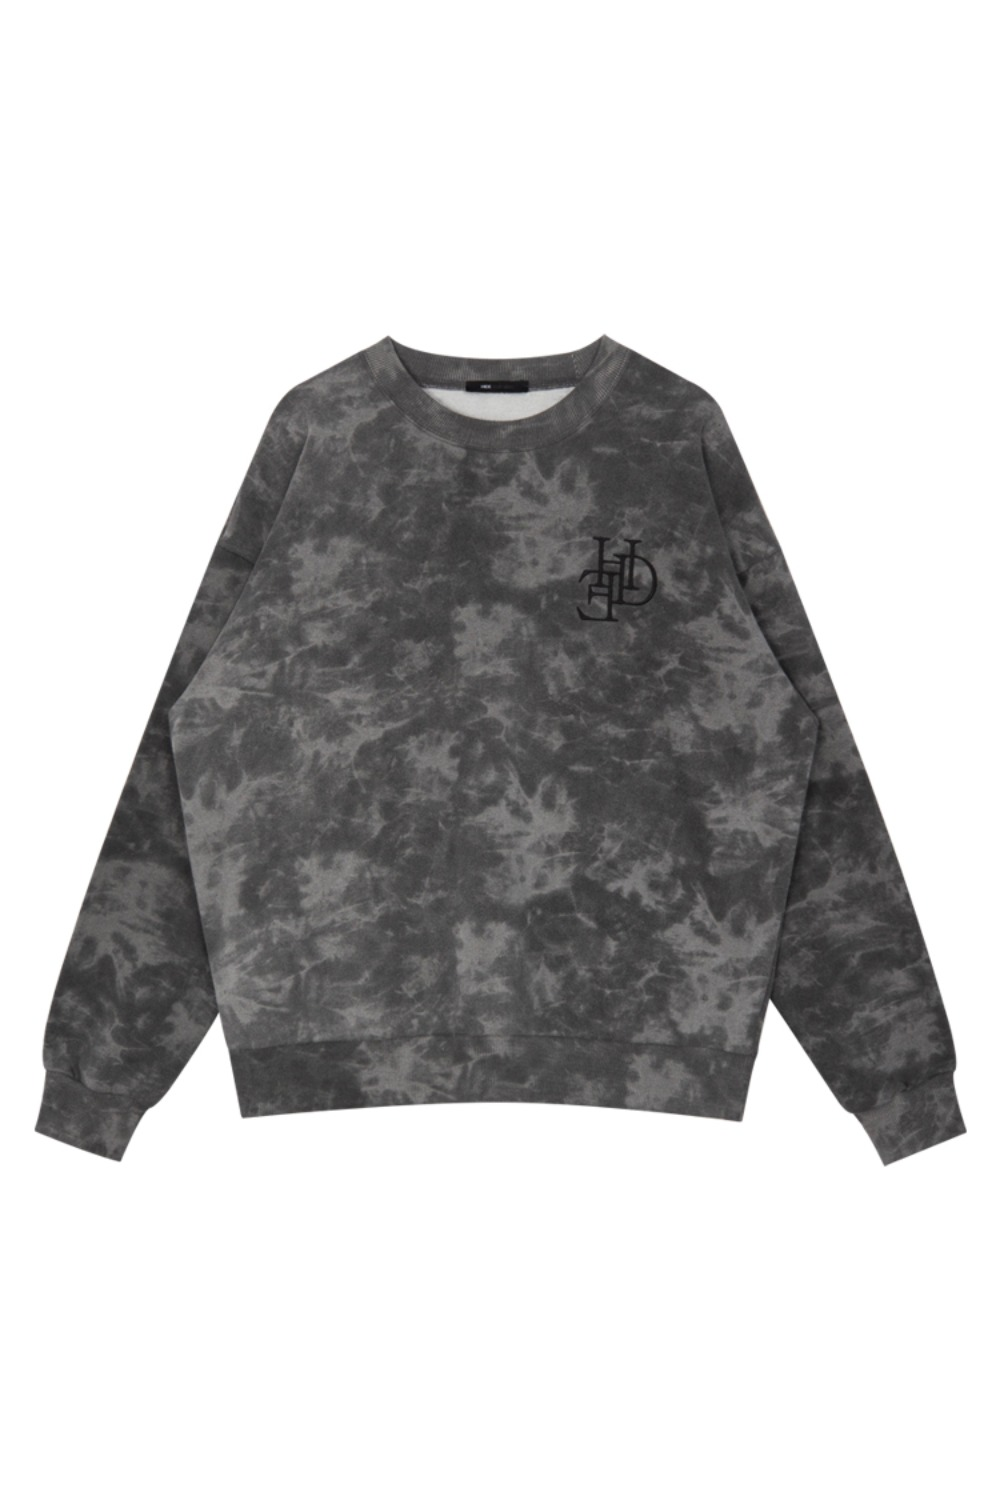 HIDE Tie Dye Sweat Shirt BLACK